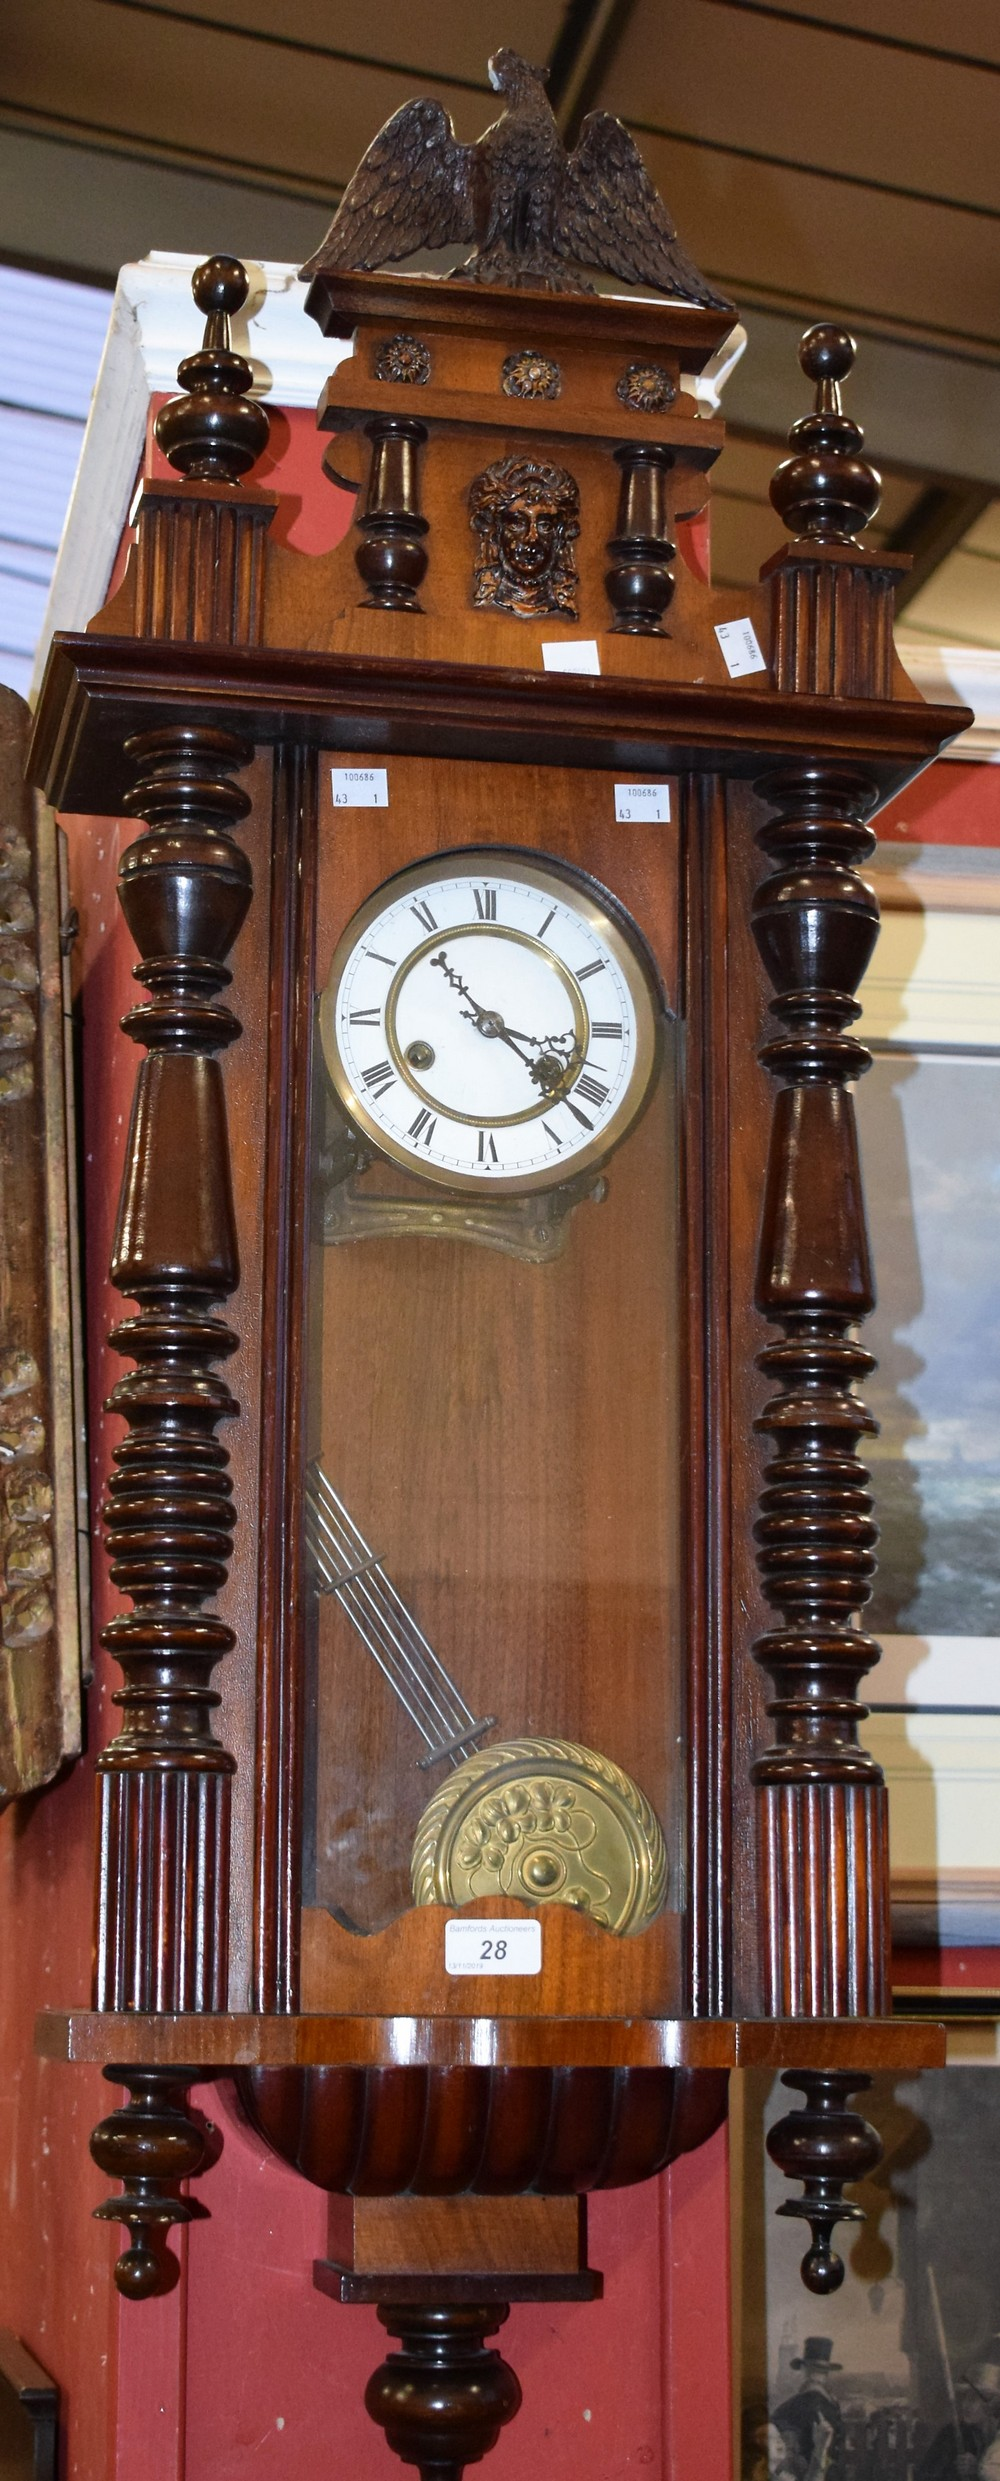 Lot 28 - A mahogany cased Vienna type wall clock, architectural pediment crested by an eagle,